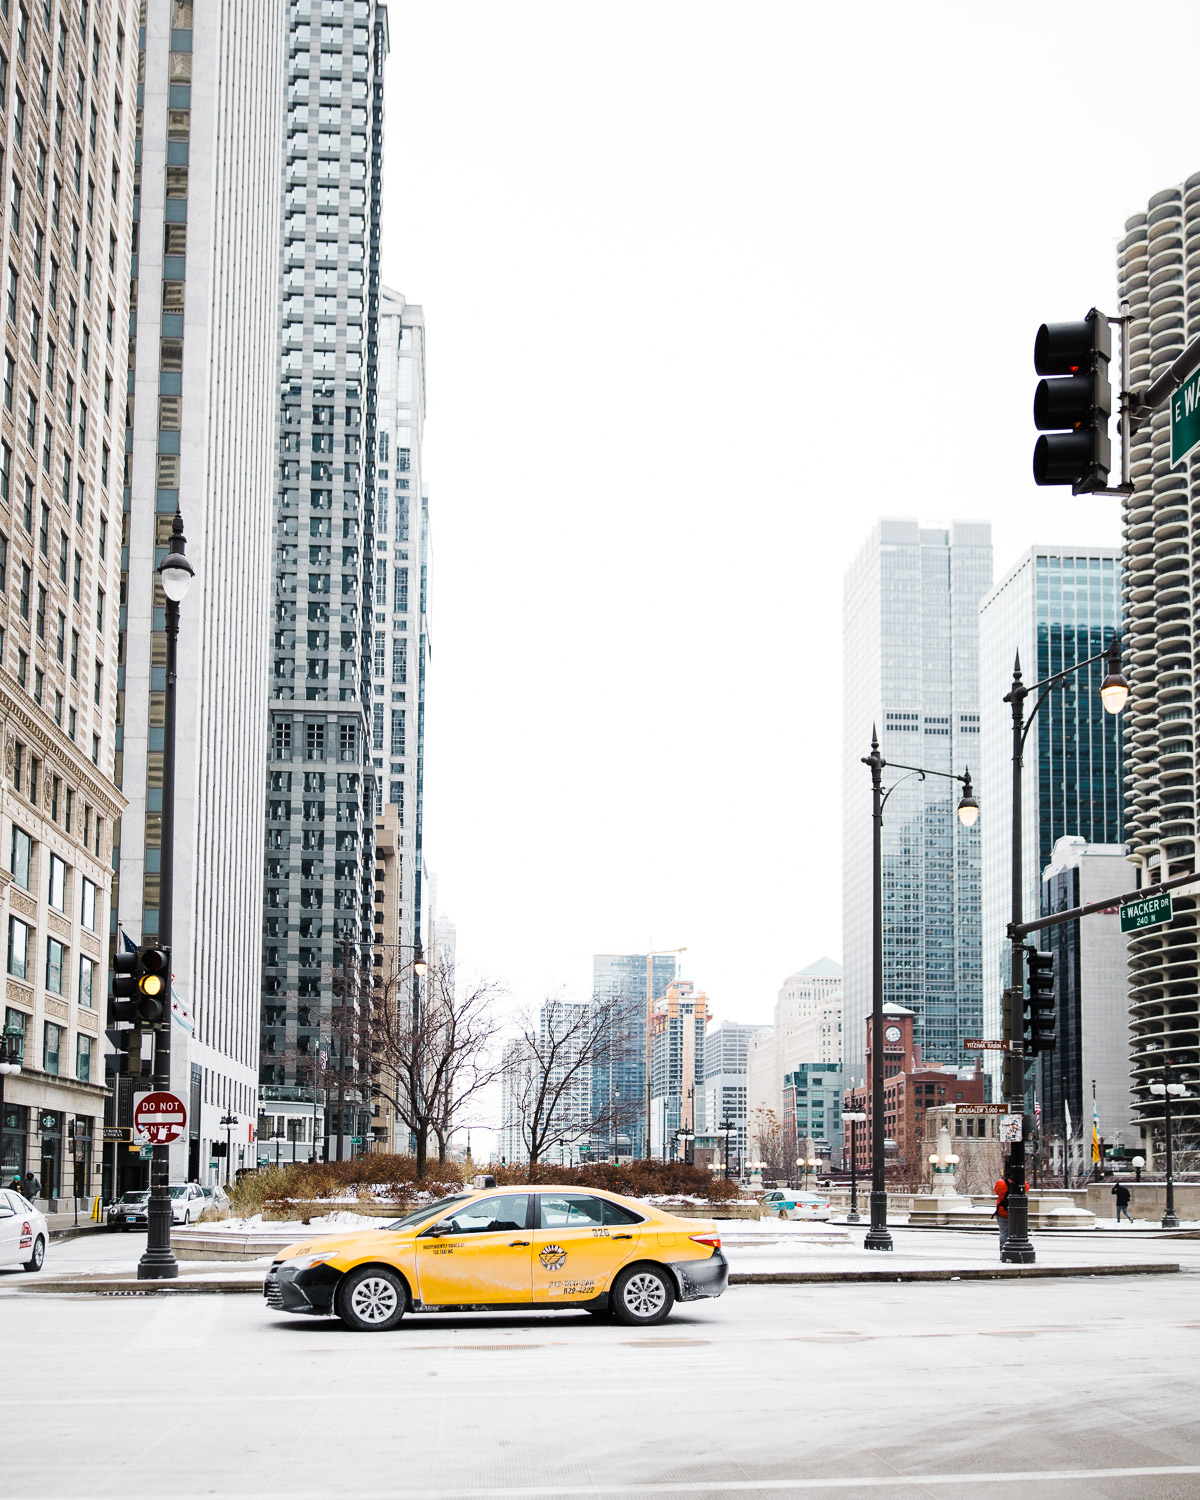 Karthika Gupta Photography - Memorable Jaunts Sigma 28mm lens review Downtown Chicago Yellow Taxi Cab